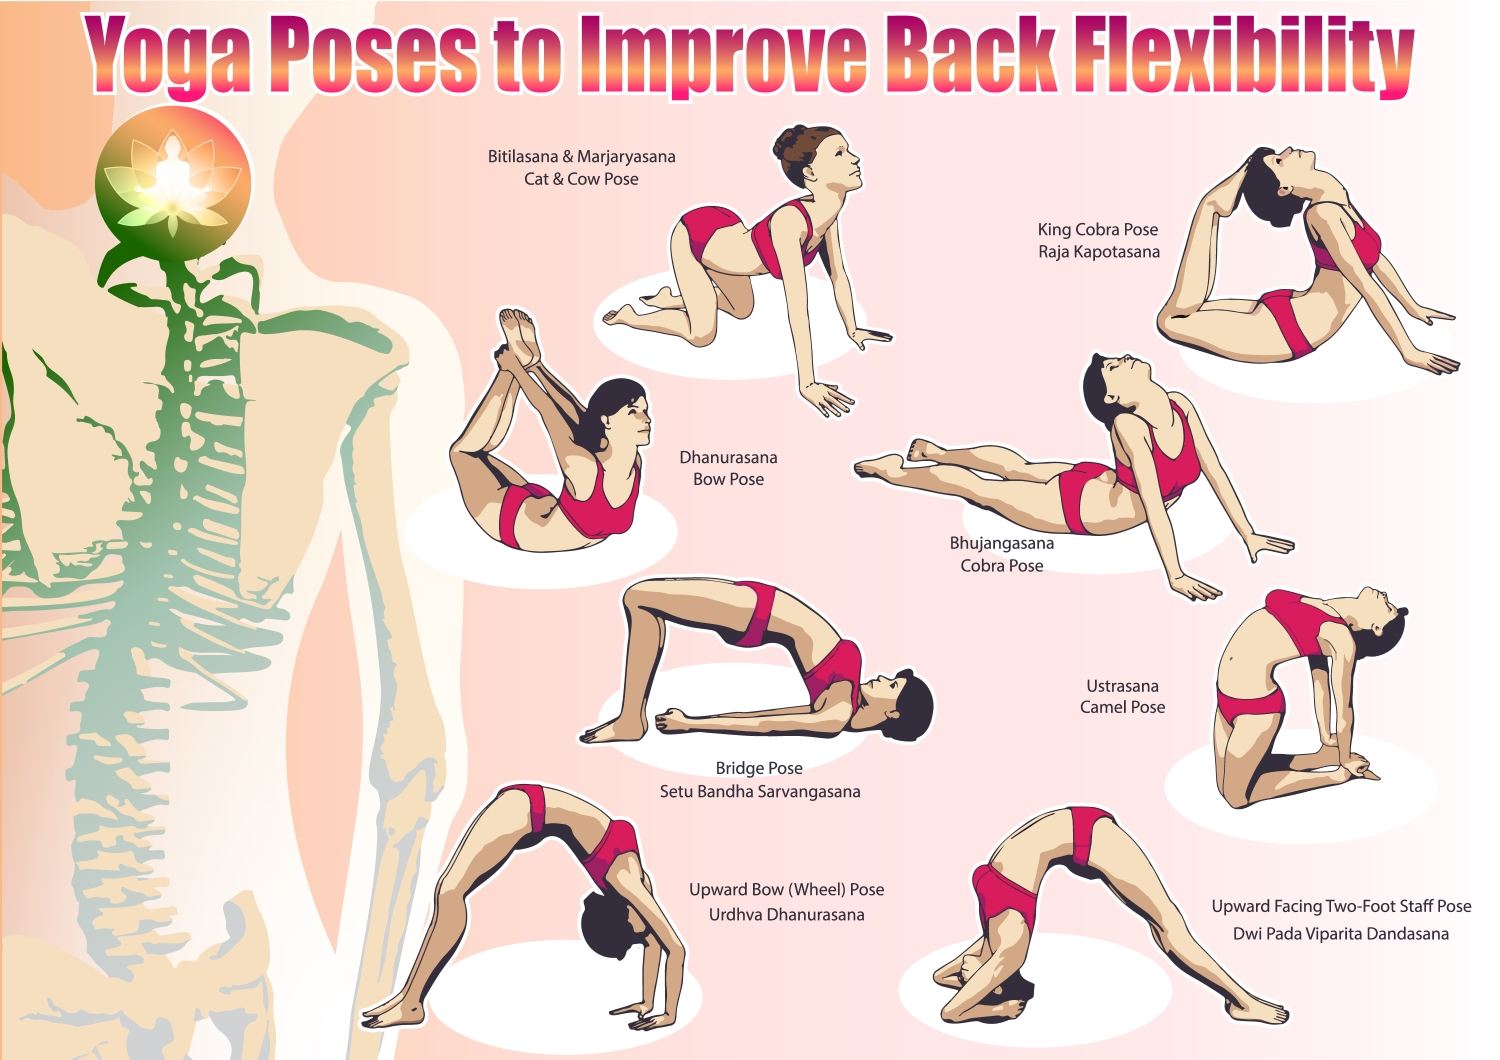 A Bit More Flexibility And I Would Try The Others As Well If You Want To One Strengthen Your Back Recommend Cobra Pose